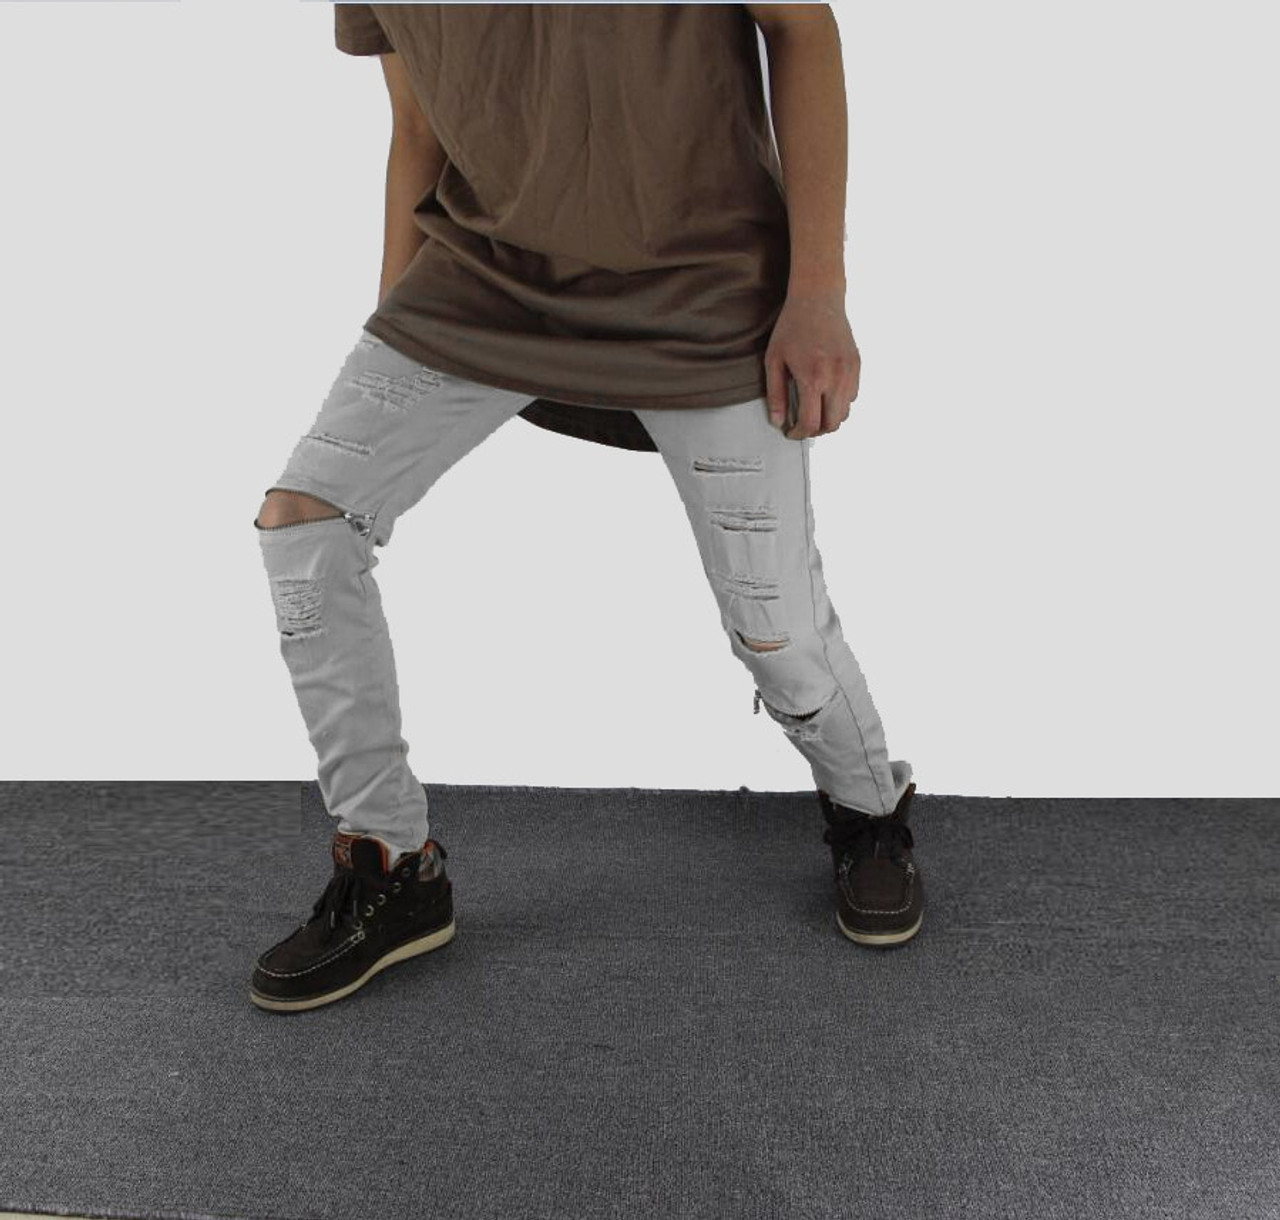 f629e1358be212 ... White Ripped Jeans Men With Holes Super Skinny Famous Designer Brand  Slim Fit Destroyed Jeans Pencil ...